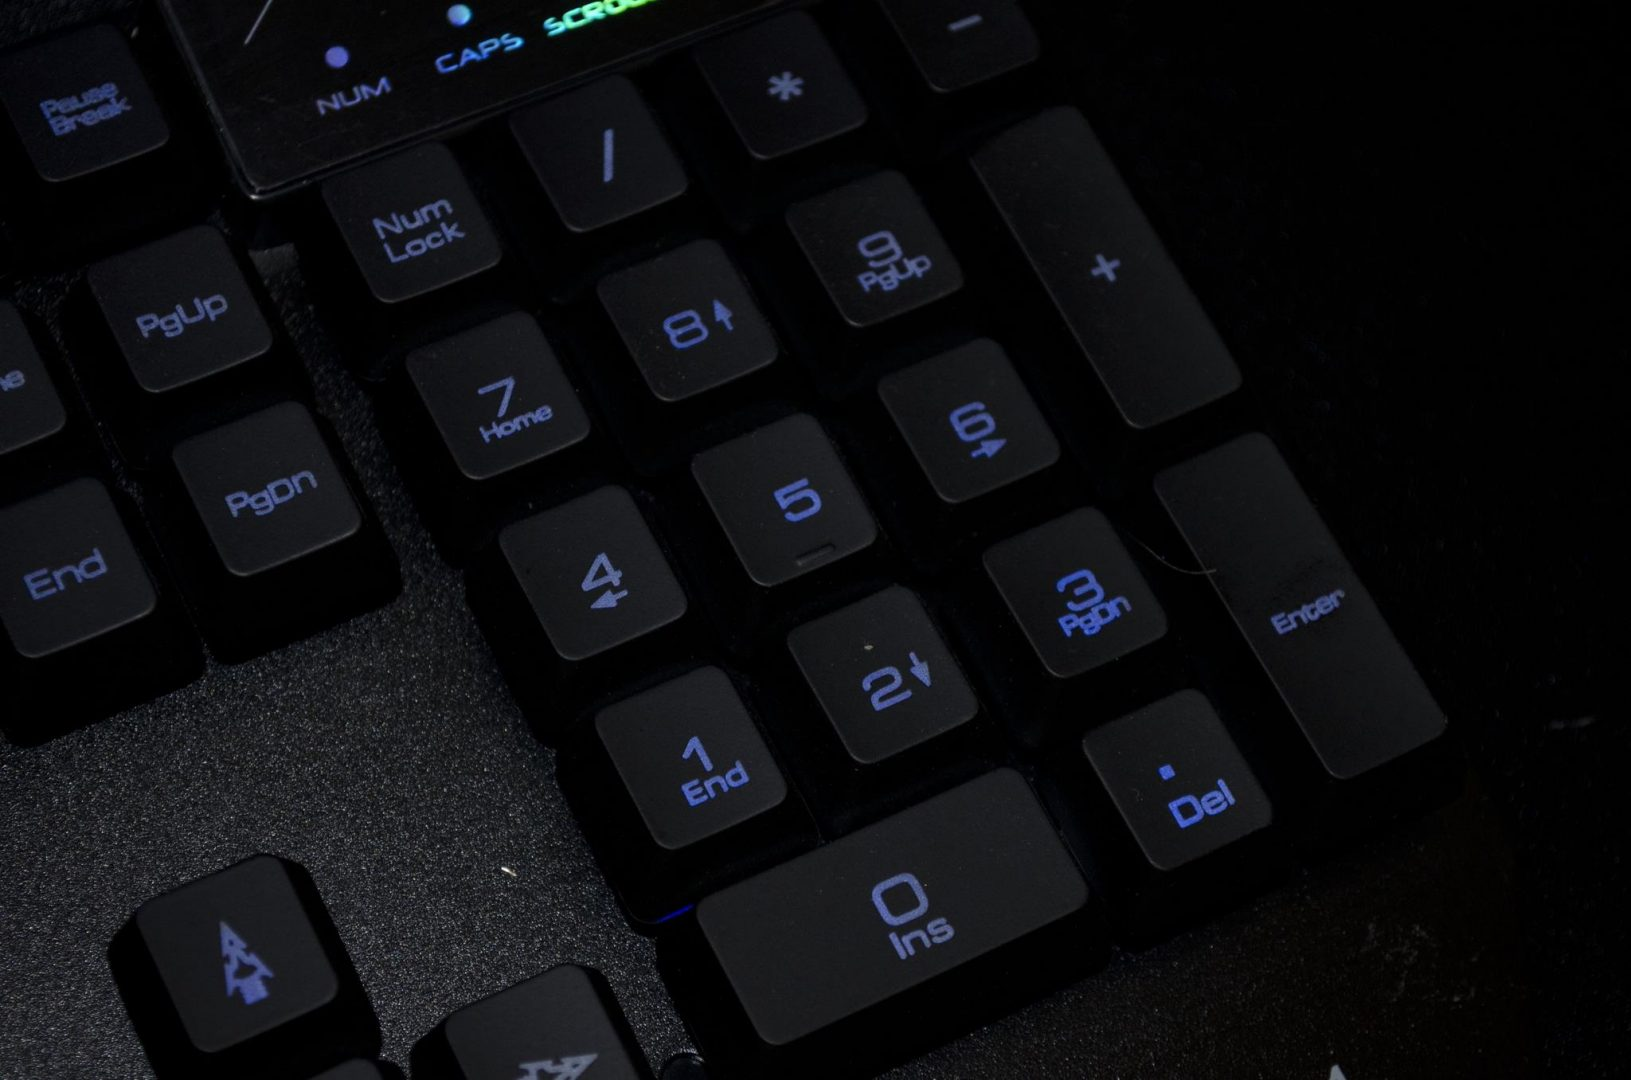 x2 mirage gaming keyboard review_12